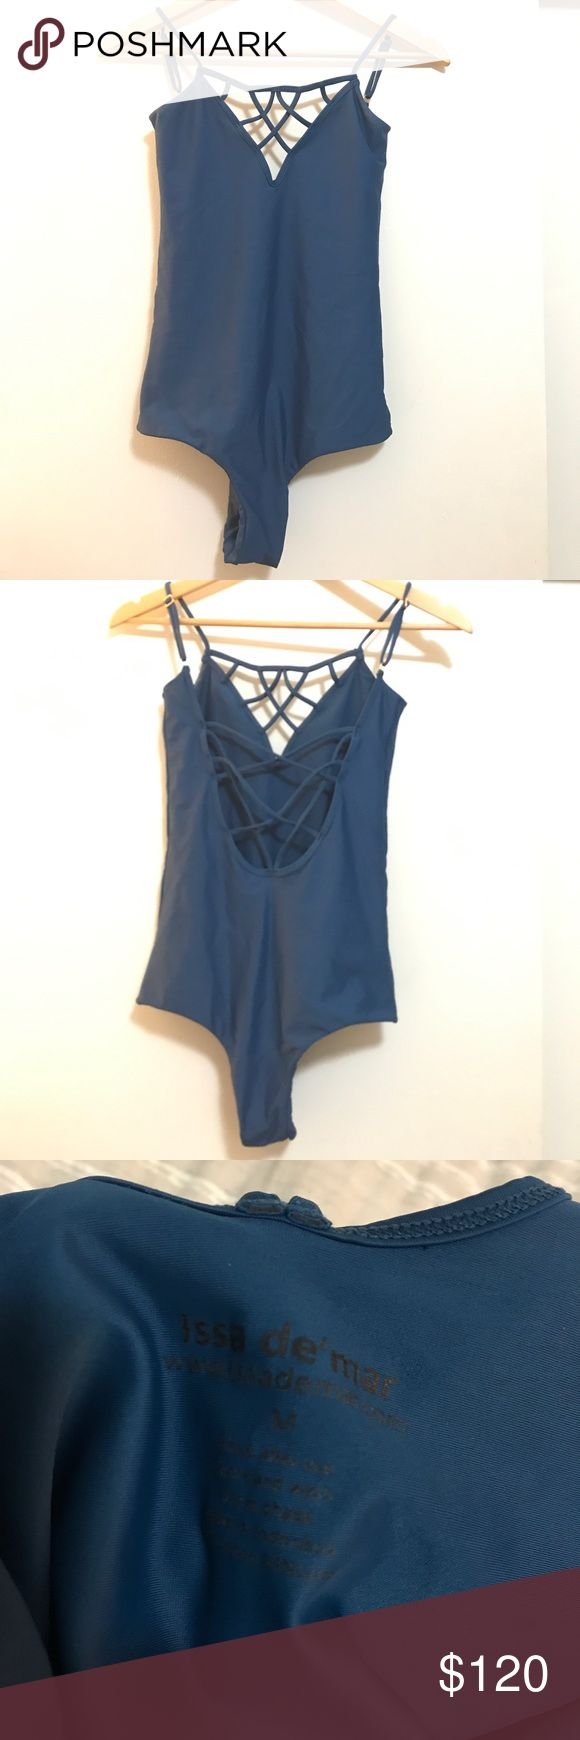 Issa De Mar Sao Paulo Issa de mar one piece suit, gorgeous blue color. Hard to find. Cheeky fit. Such a flattering cut. Worn once and hand washed. In excellent condition. Color most similar to last photo. Open to offers issa de mar Swim One Pieces